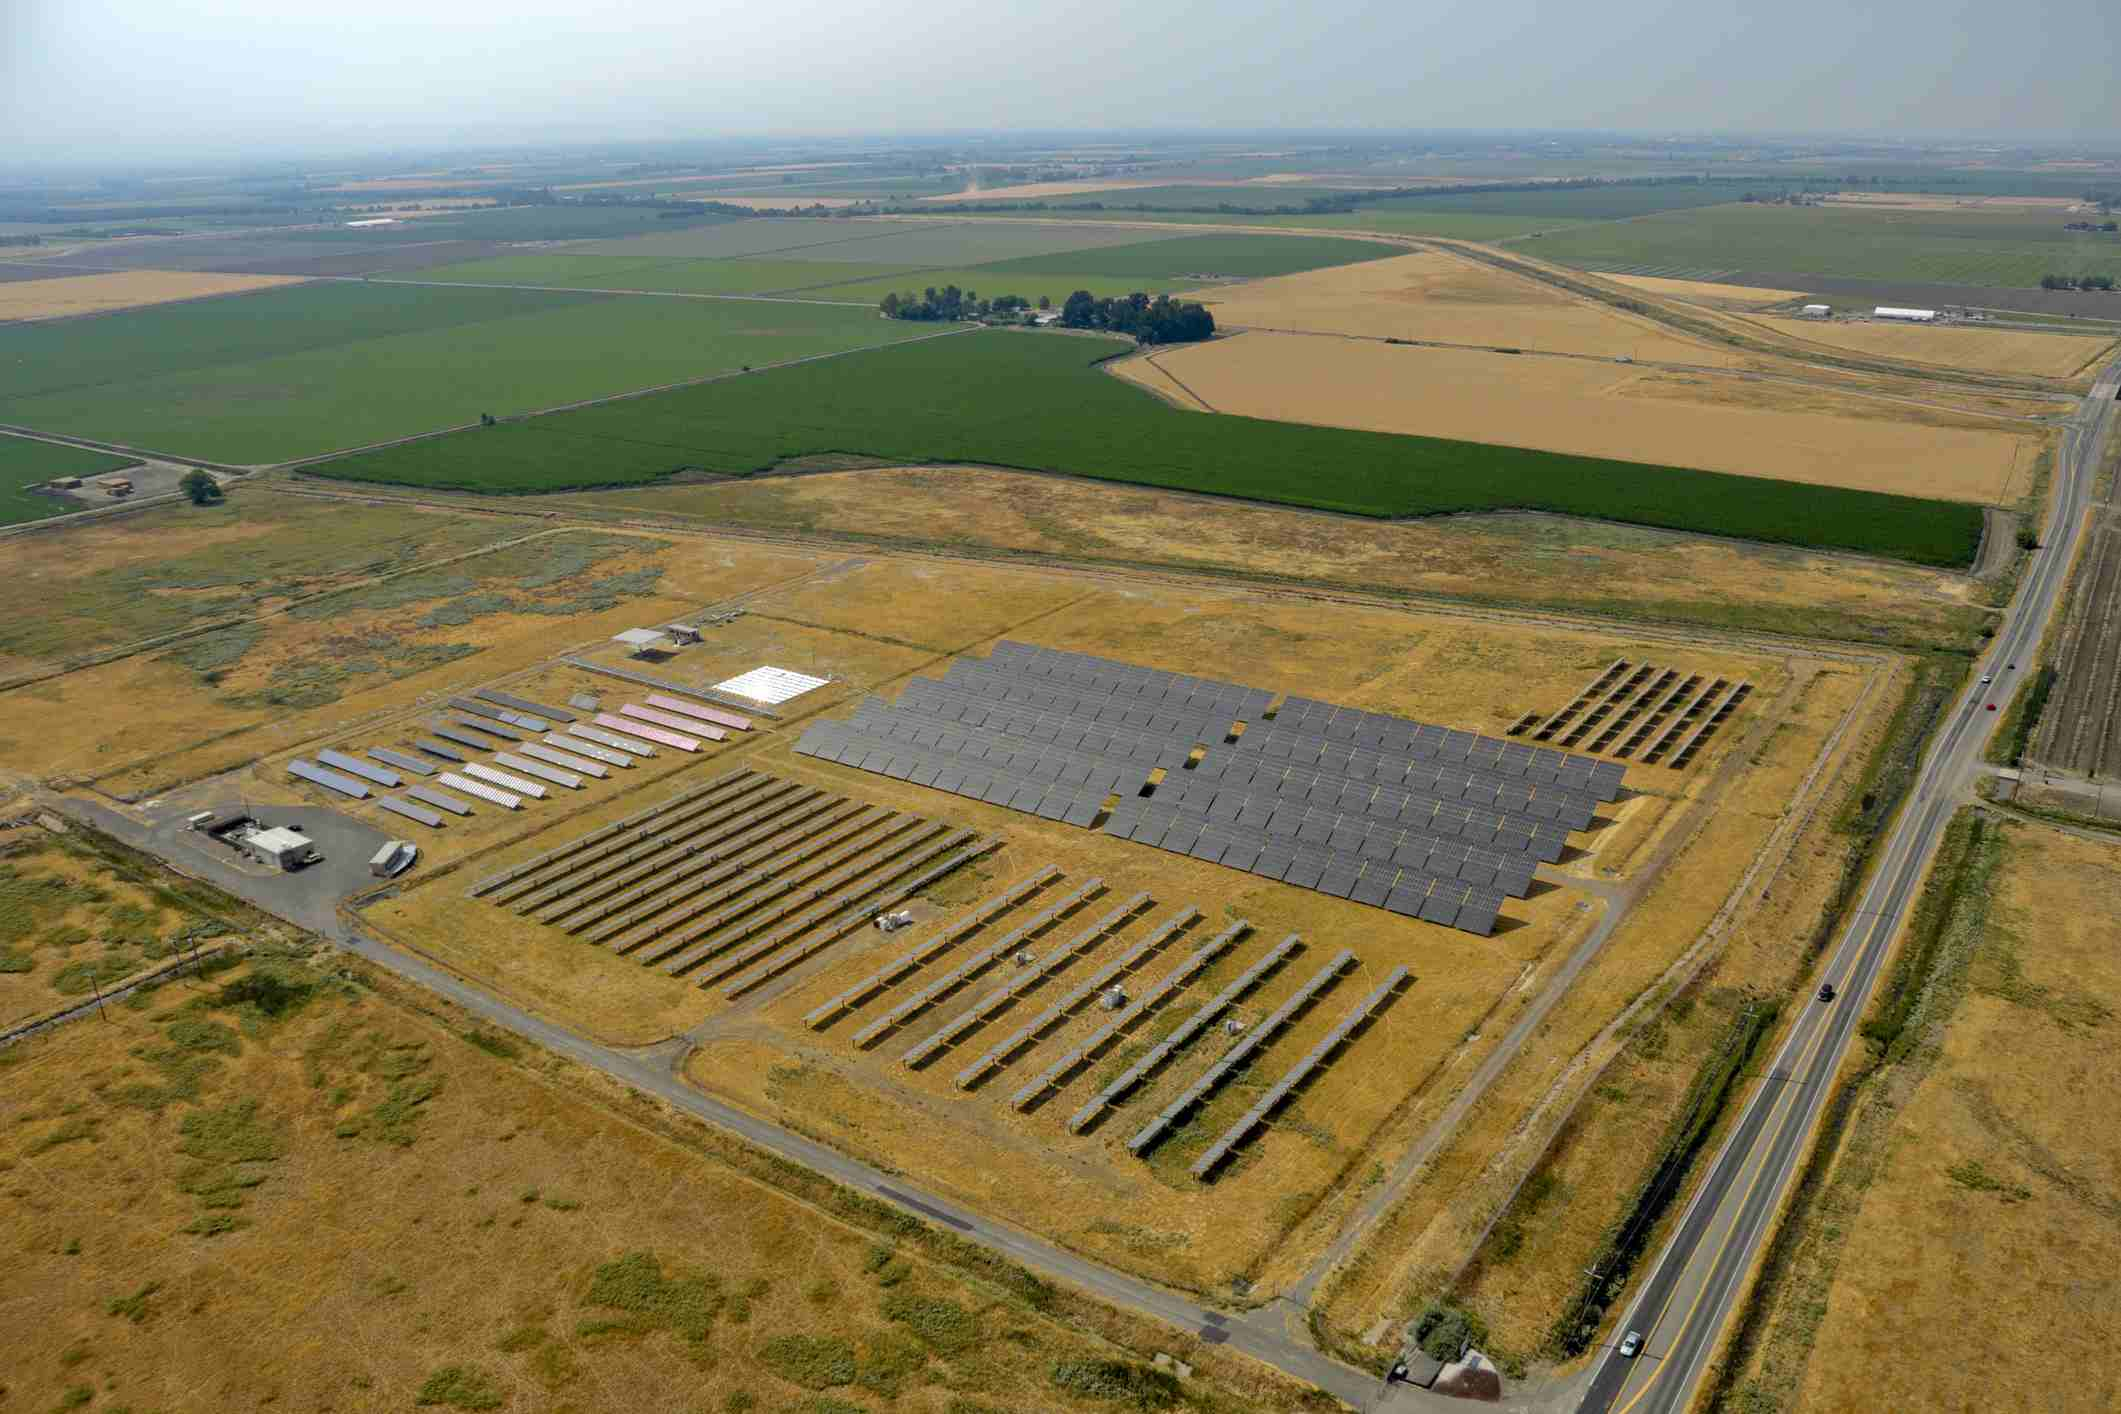 Ariel view of solar panels at UC Davis photovoltaic research farm